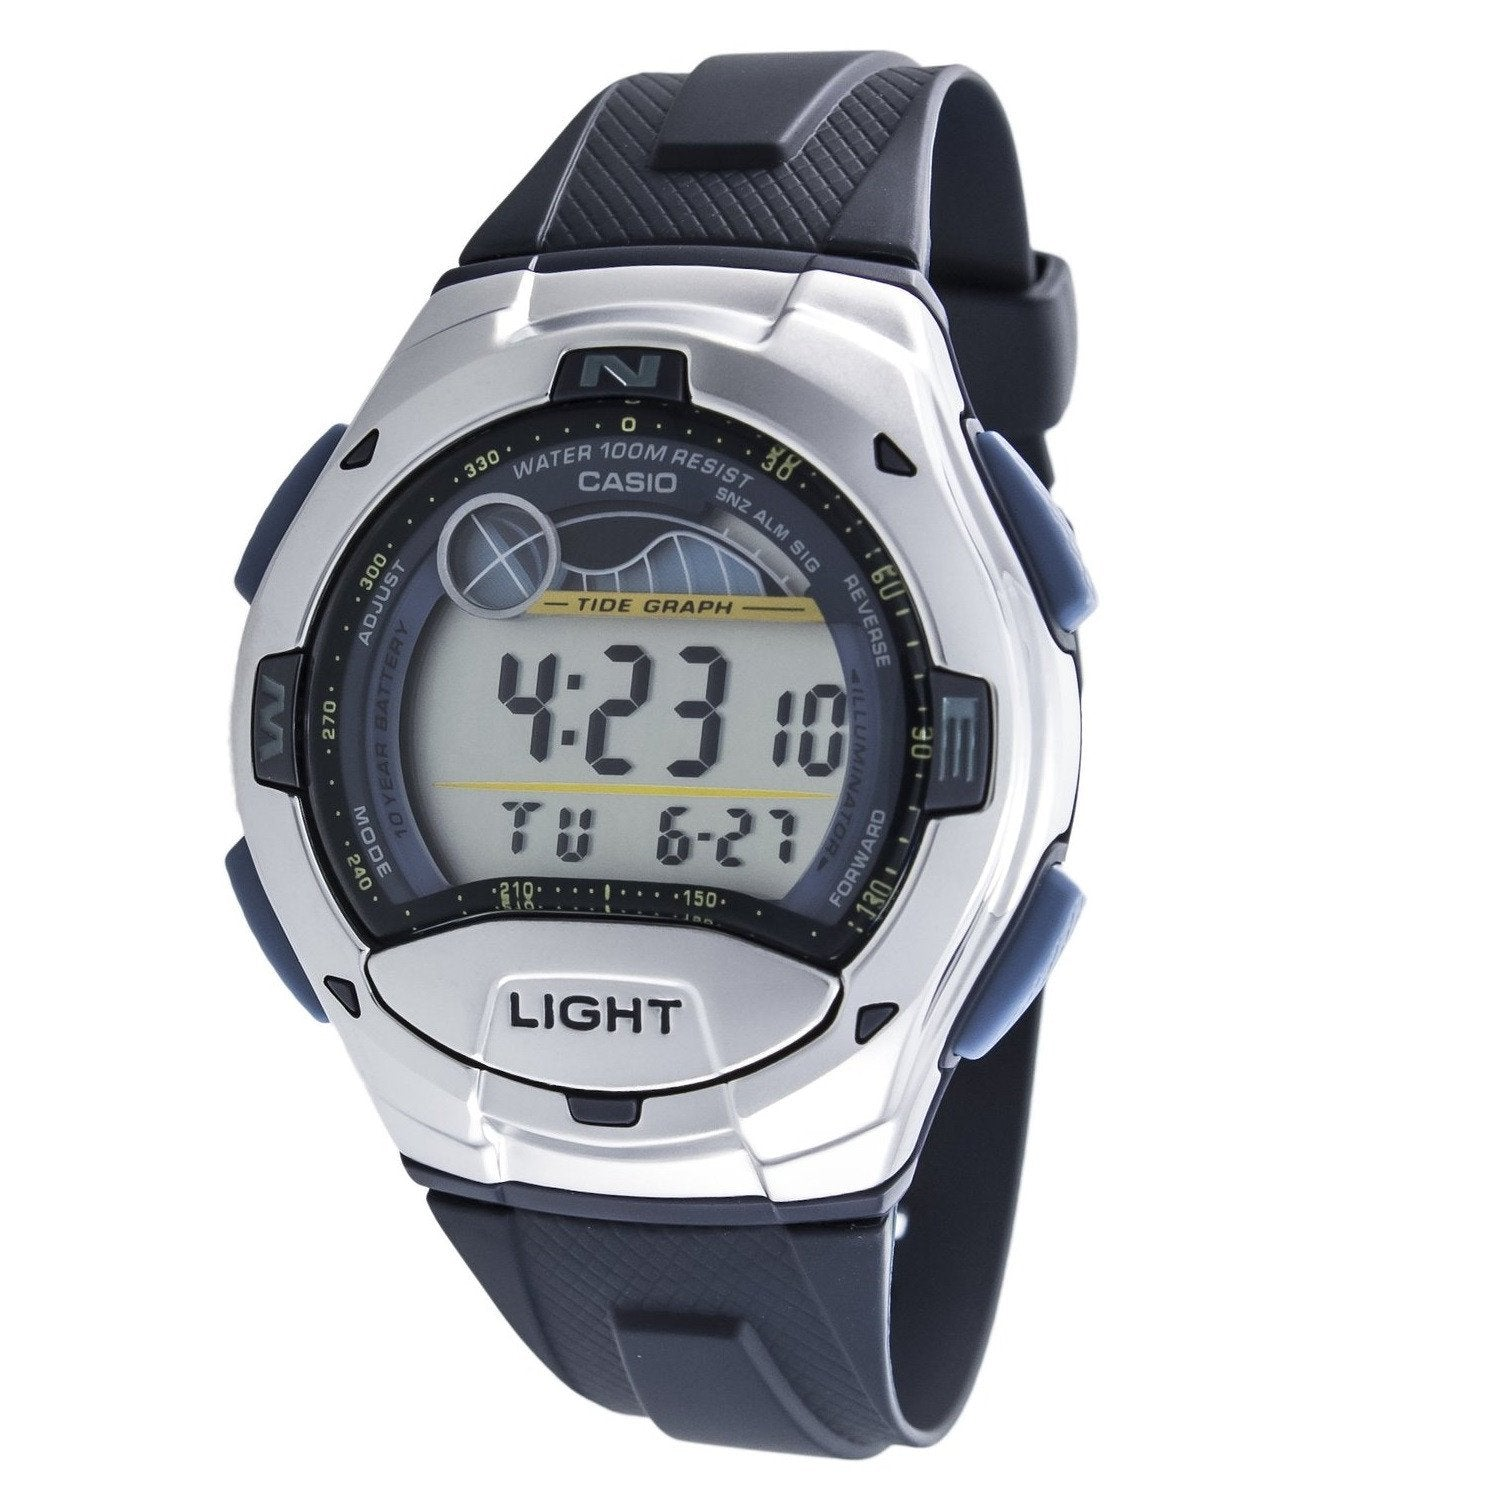 Casio W753-2AVES Digital Chronograph Watch